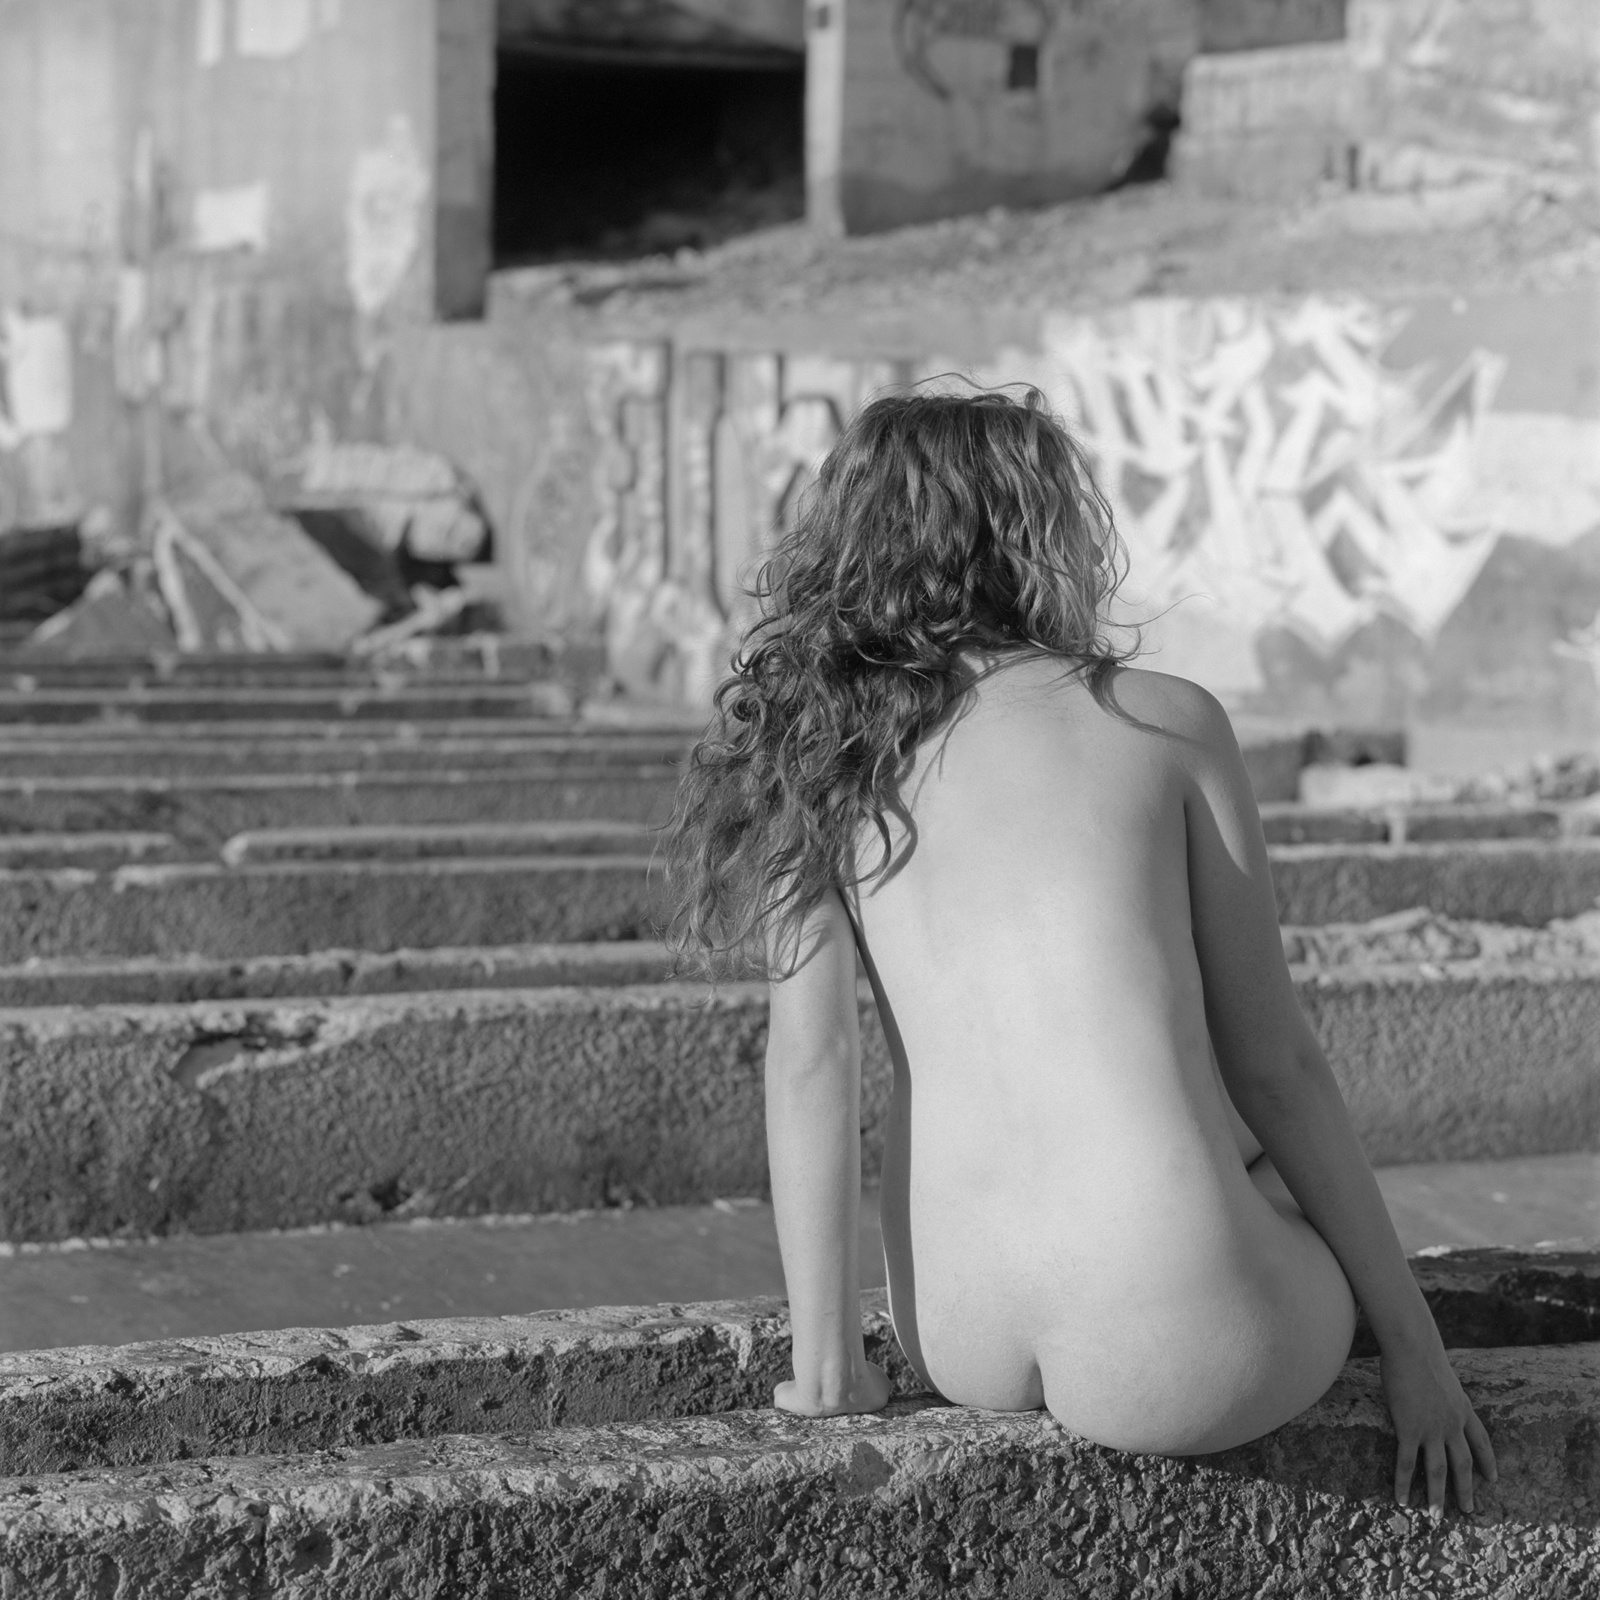 Sorry, Black and white publick nude